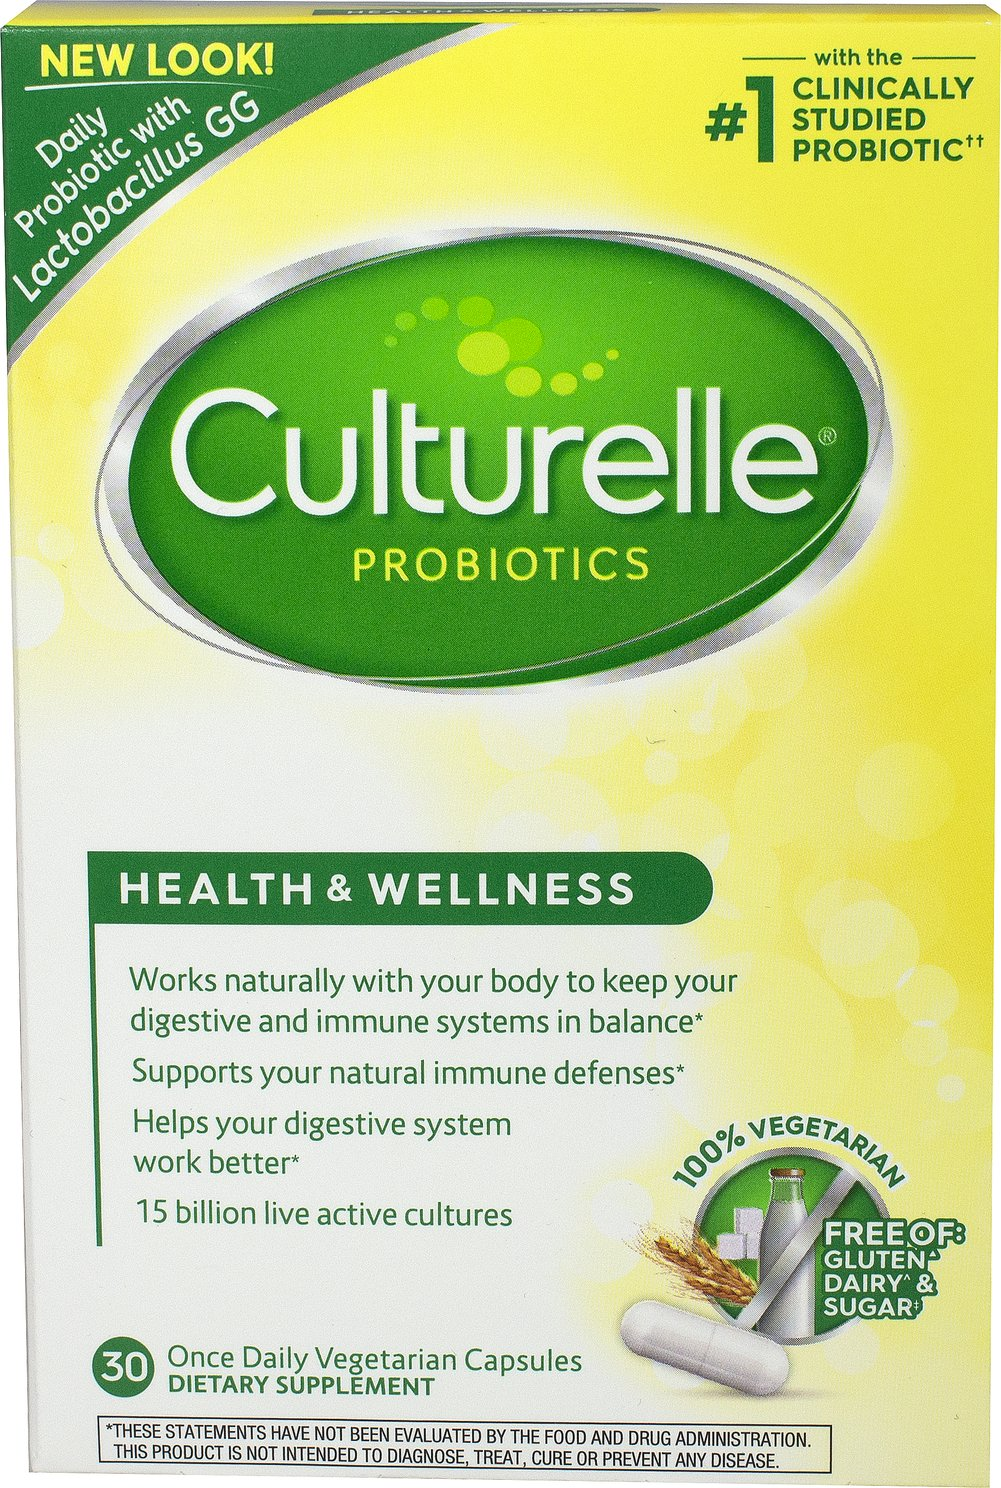 Culturelle® Probiotic <p><b>From the Manufacturer's Label: </p></b><p>Supports your healthy immune system**</p>  <p>Boosts digestion and overall digestive health**</p>  <p>Restores the natural balance of good bacteria in your digestive tract**</p>  30 Capsules 10 billion $15.04